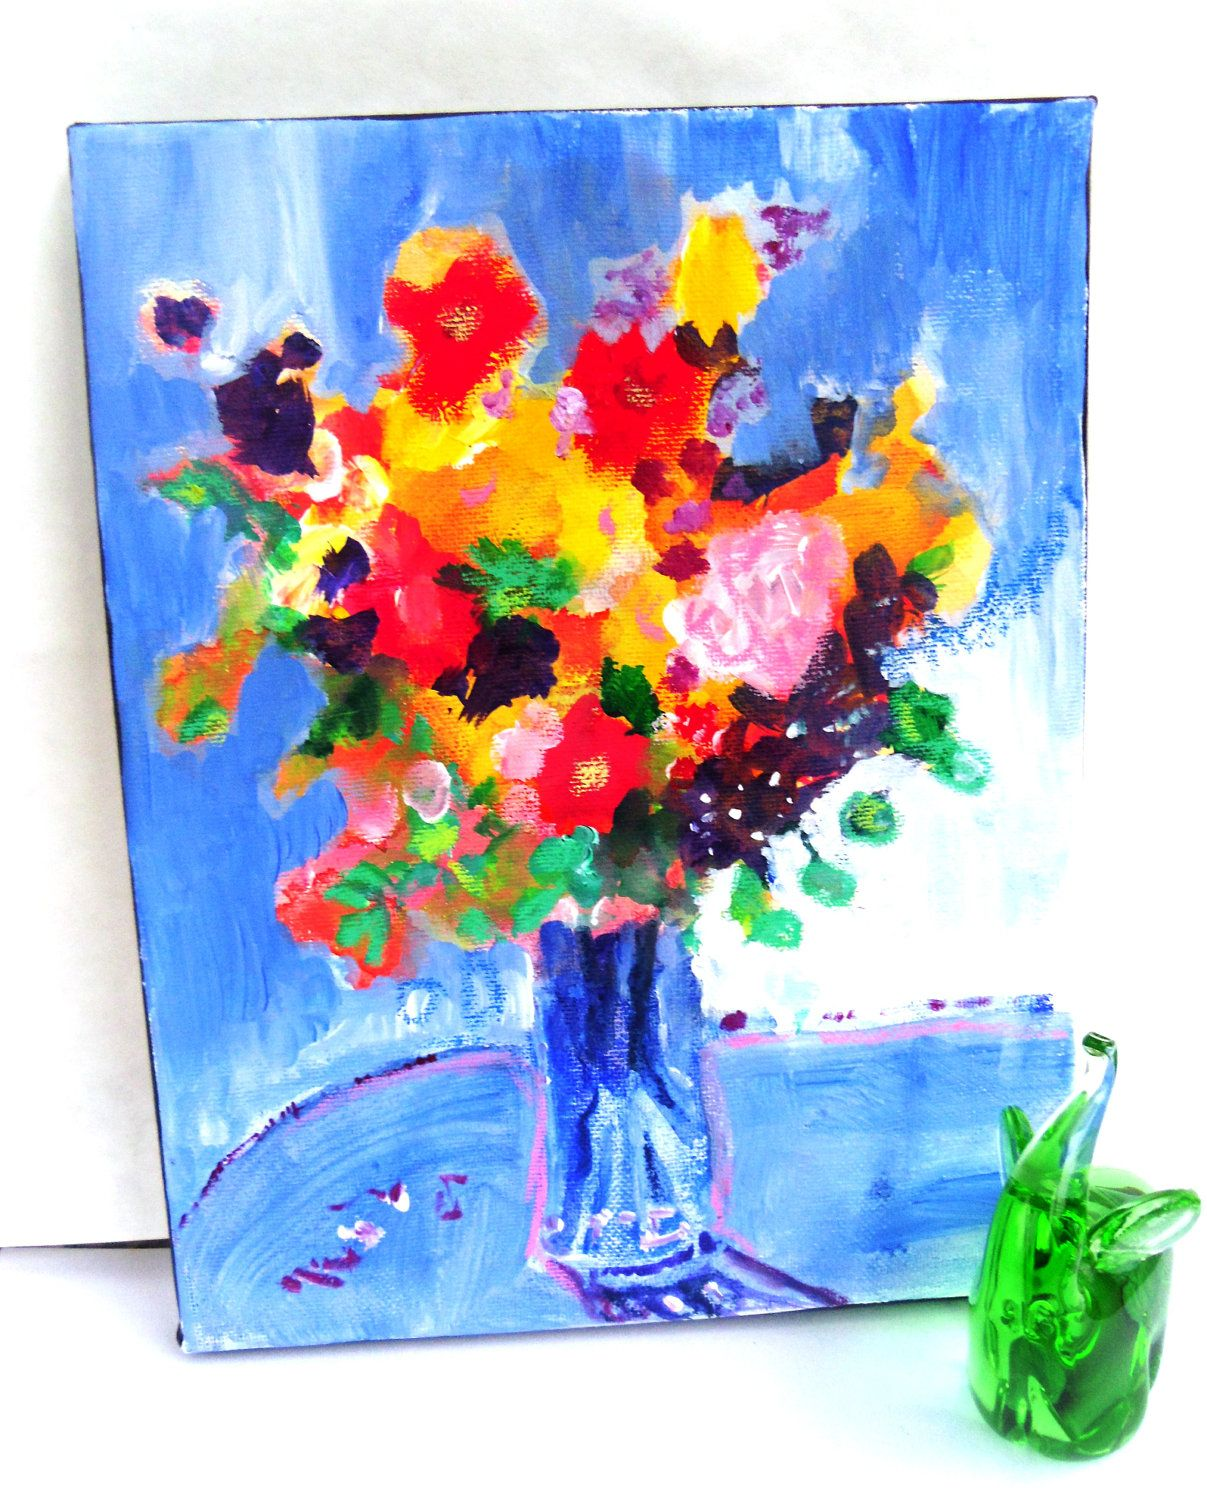 Abstract Vase Of Flowers Painting Google Search Abstract